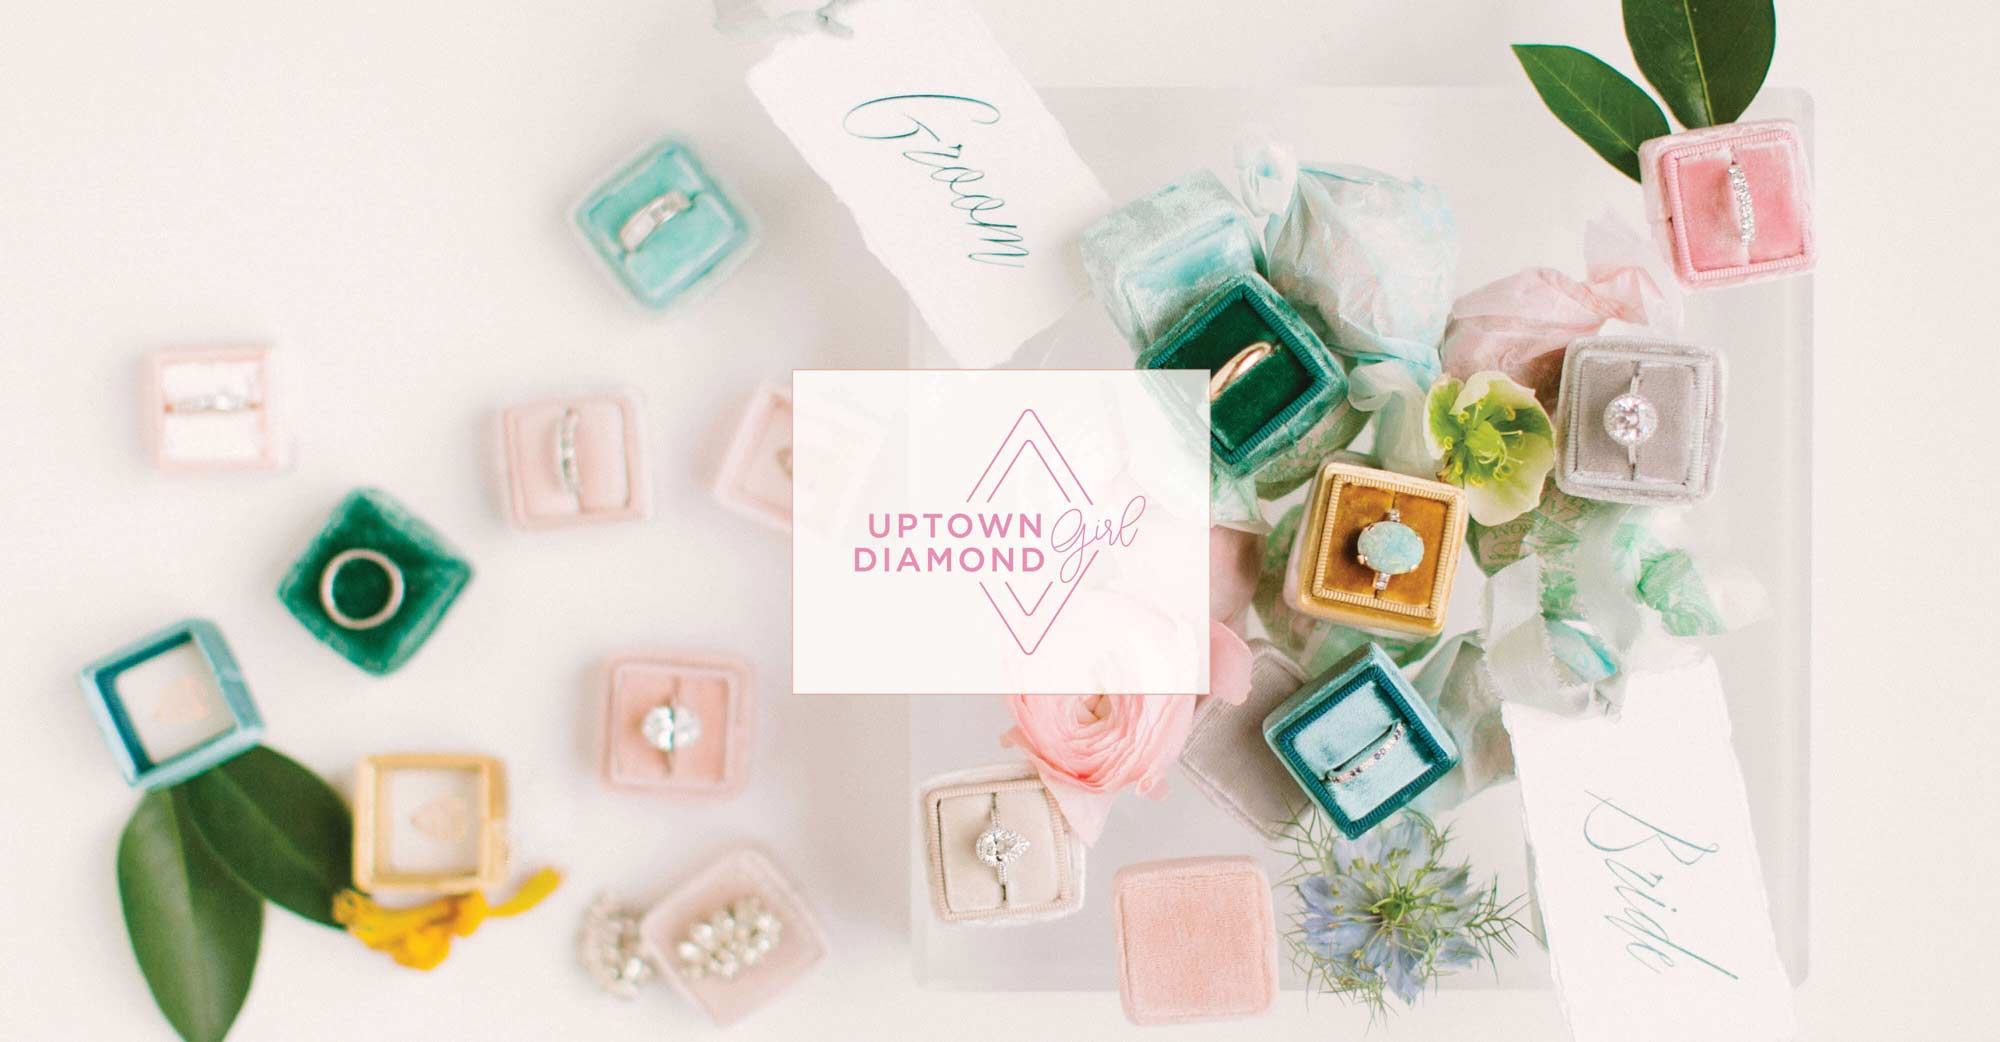 Uptown Diamond Girl - Houston Wedding Engagement Ring Designer